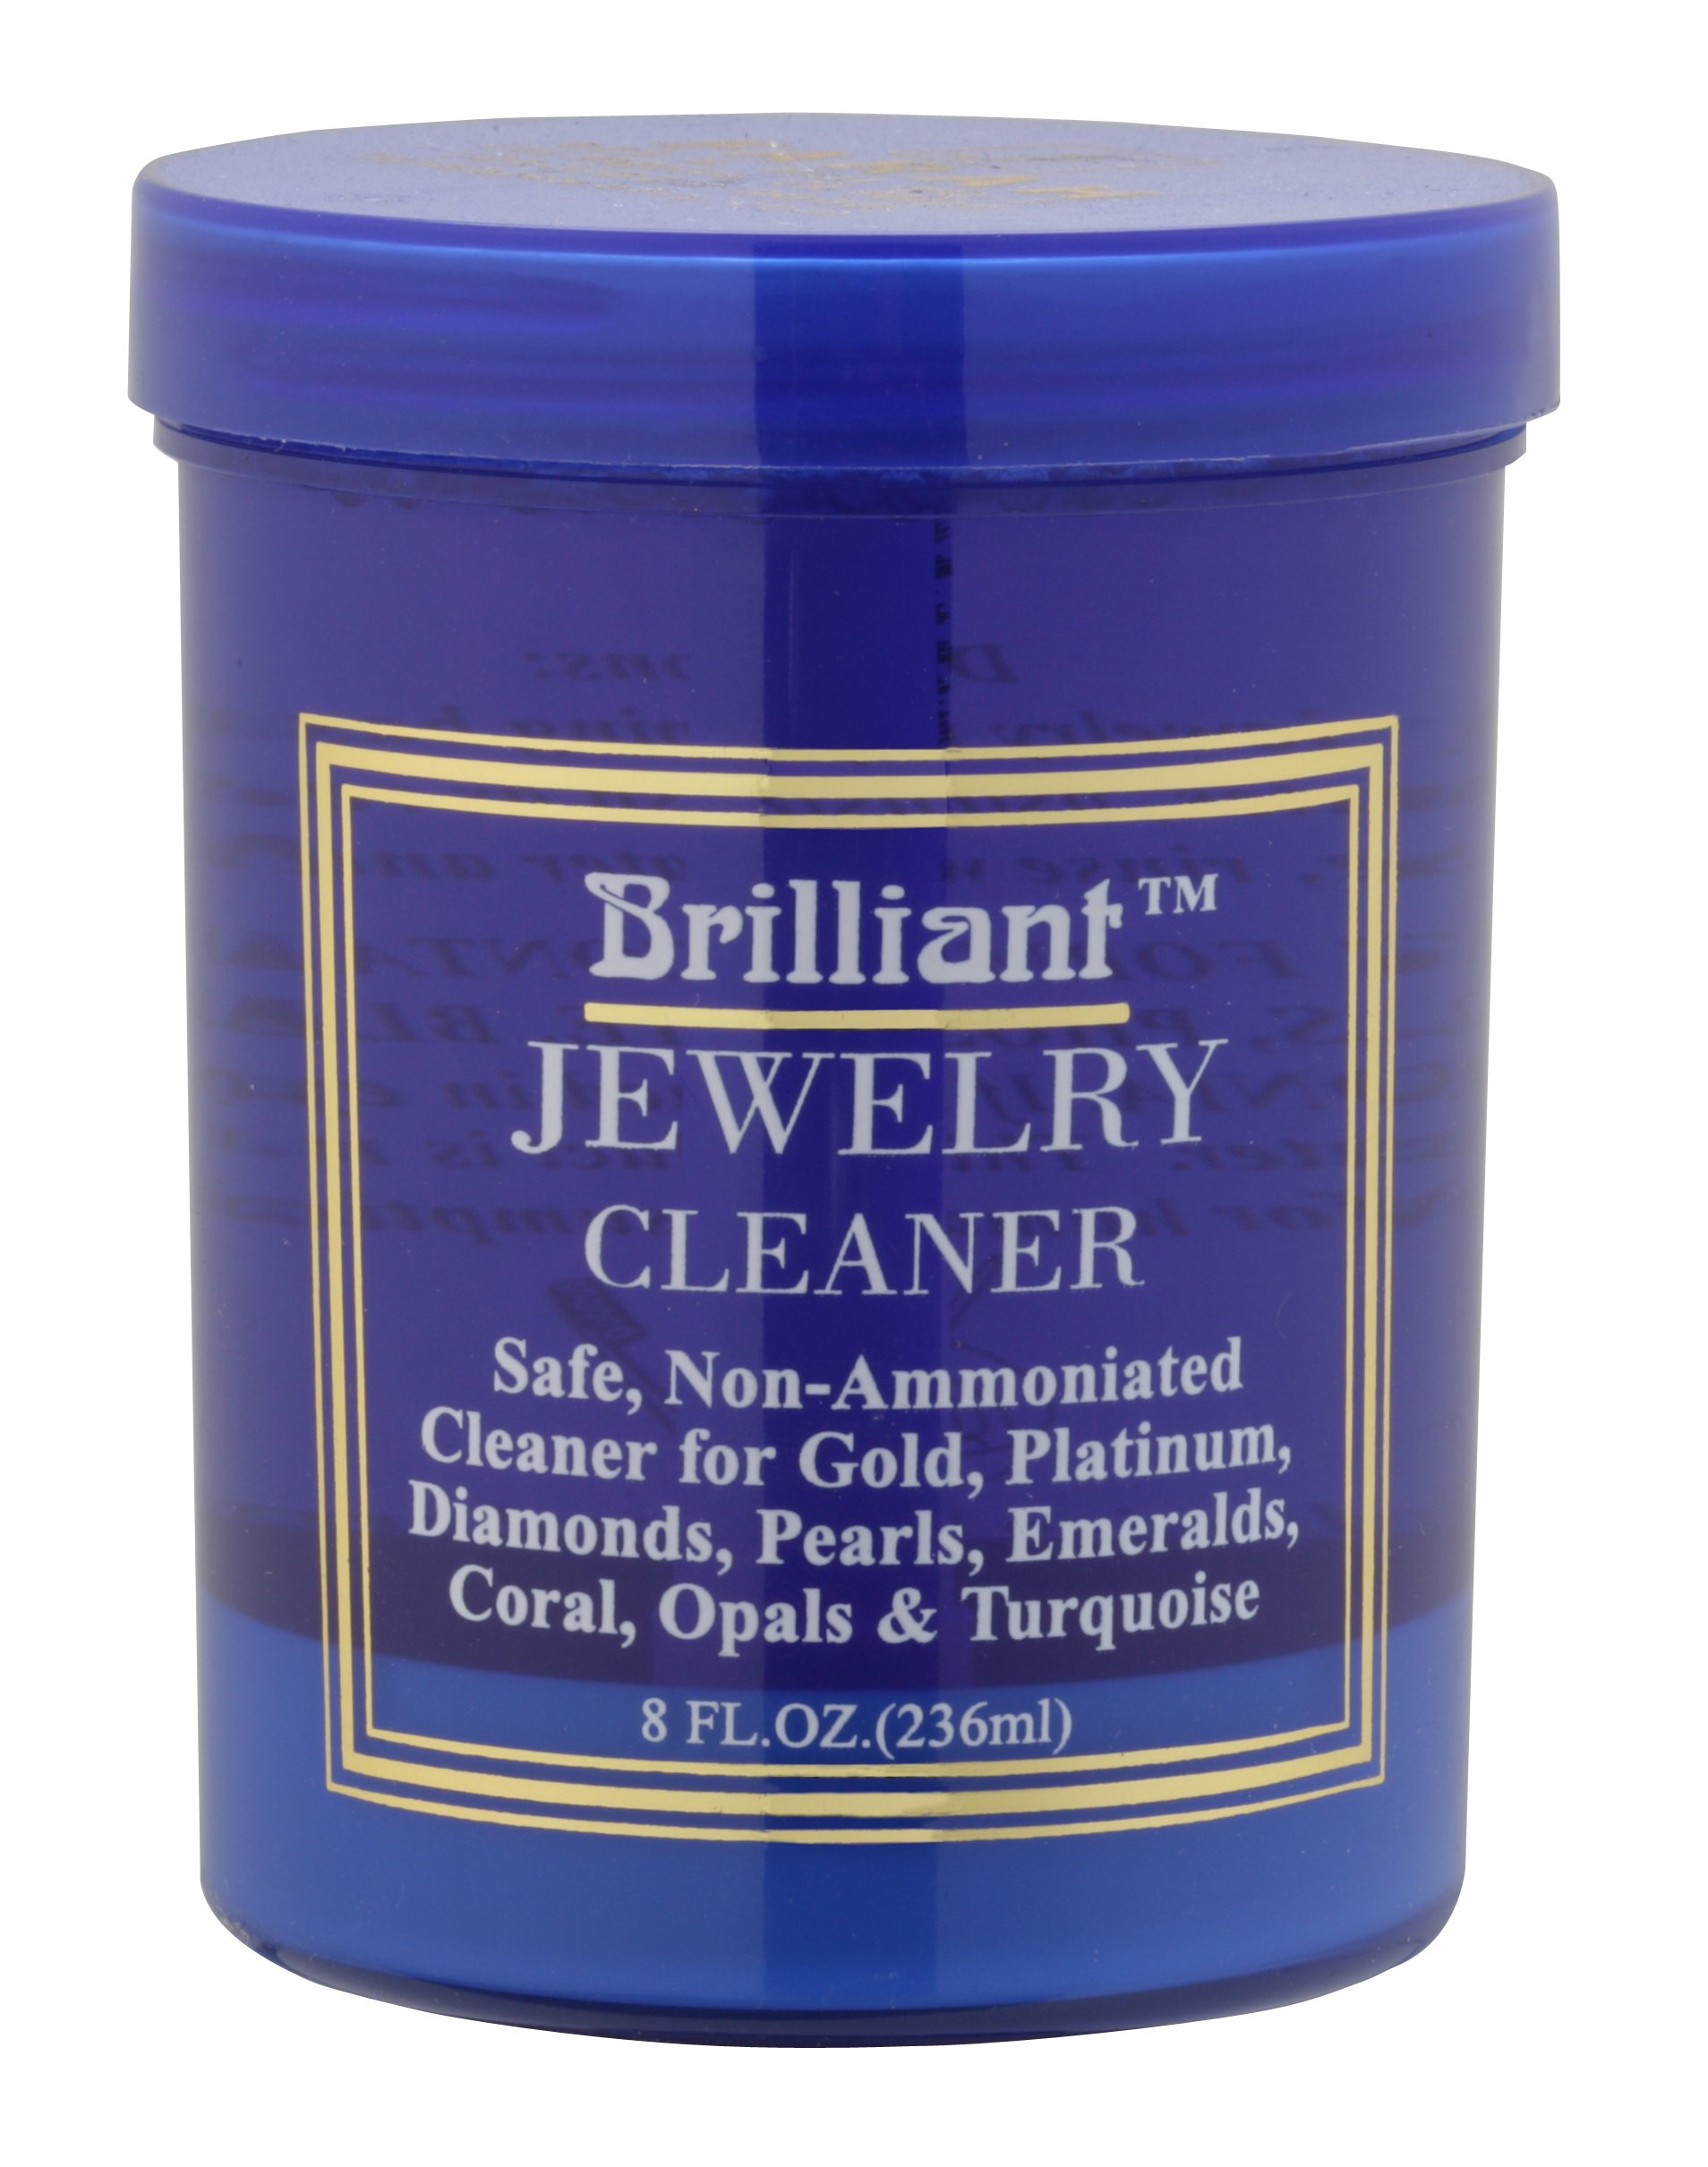 Brilliant® 8 Oz Jewelry Cleaner with Cleaning Basket and Brush